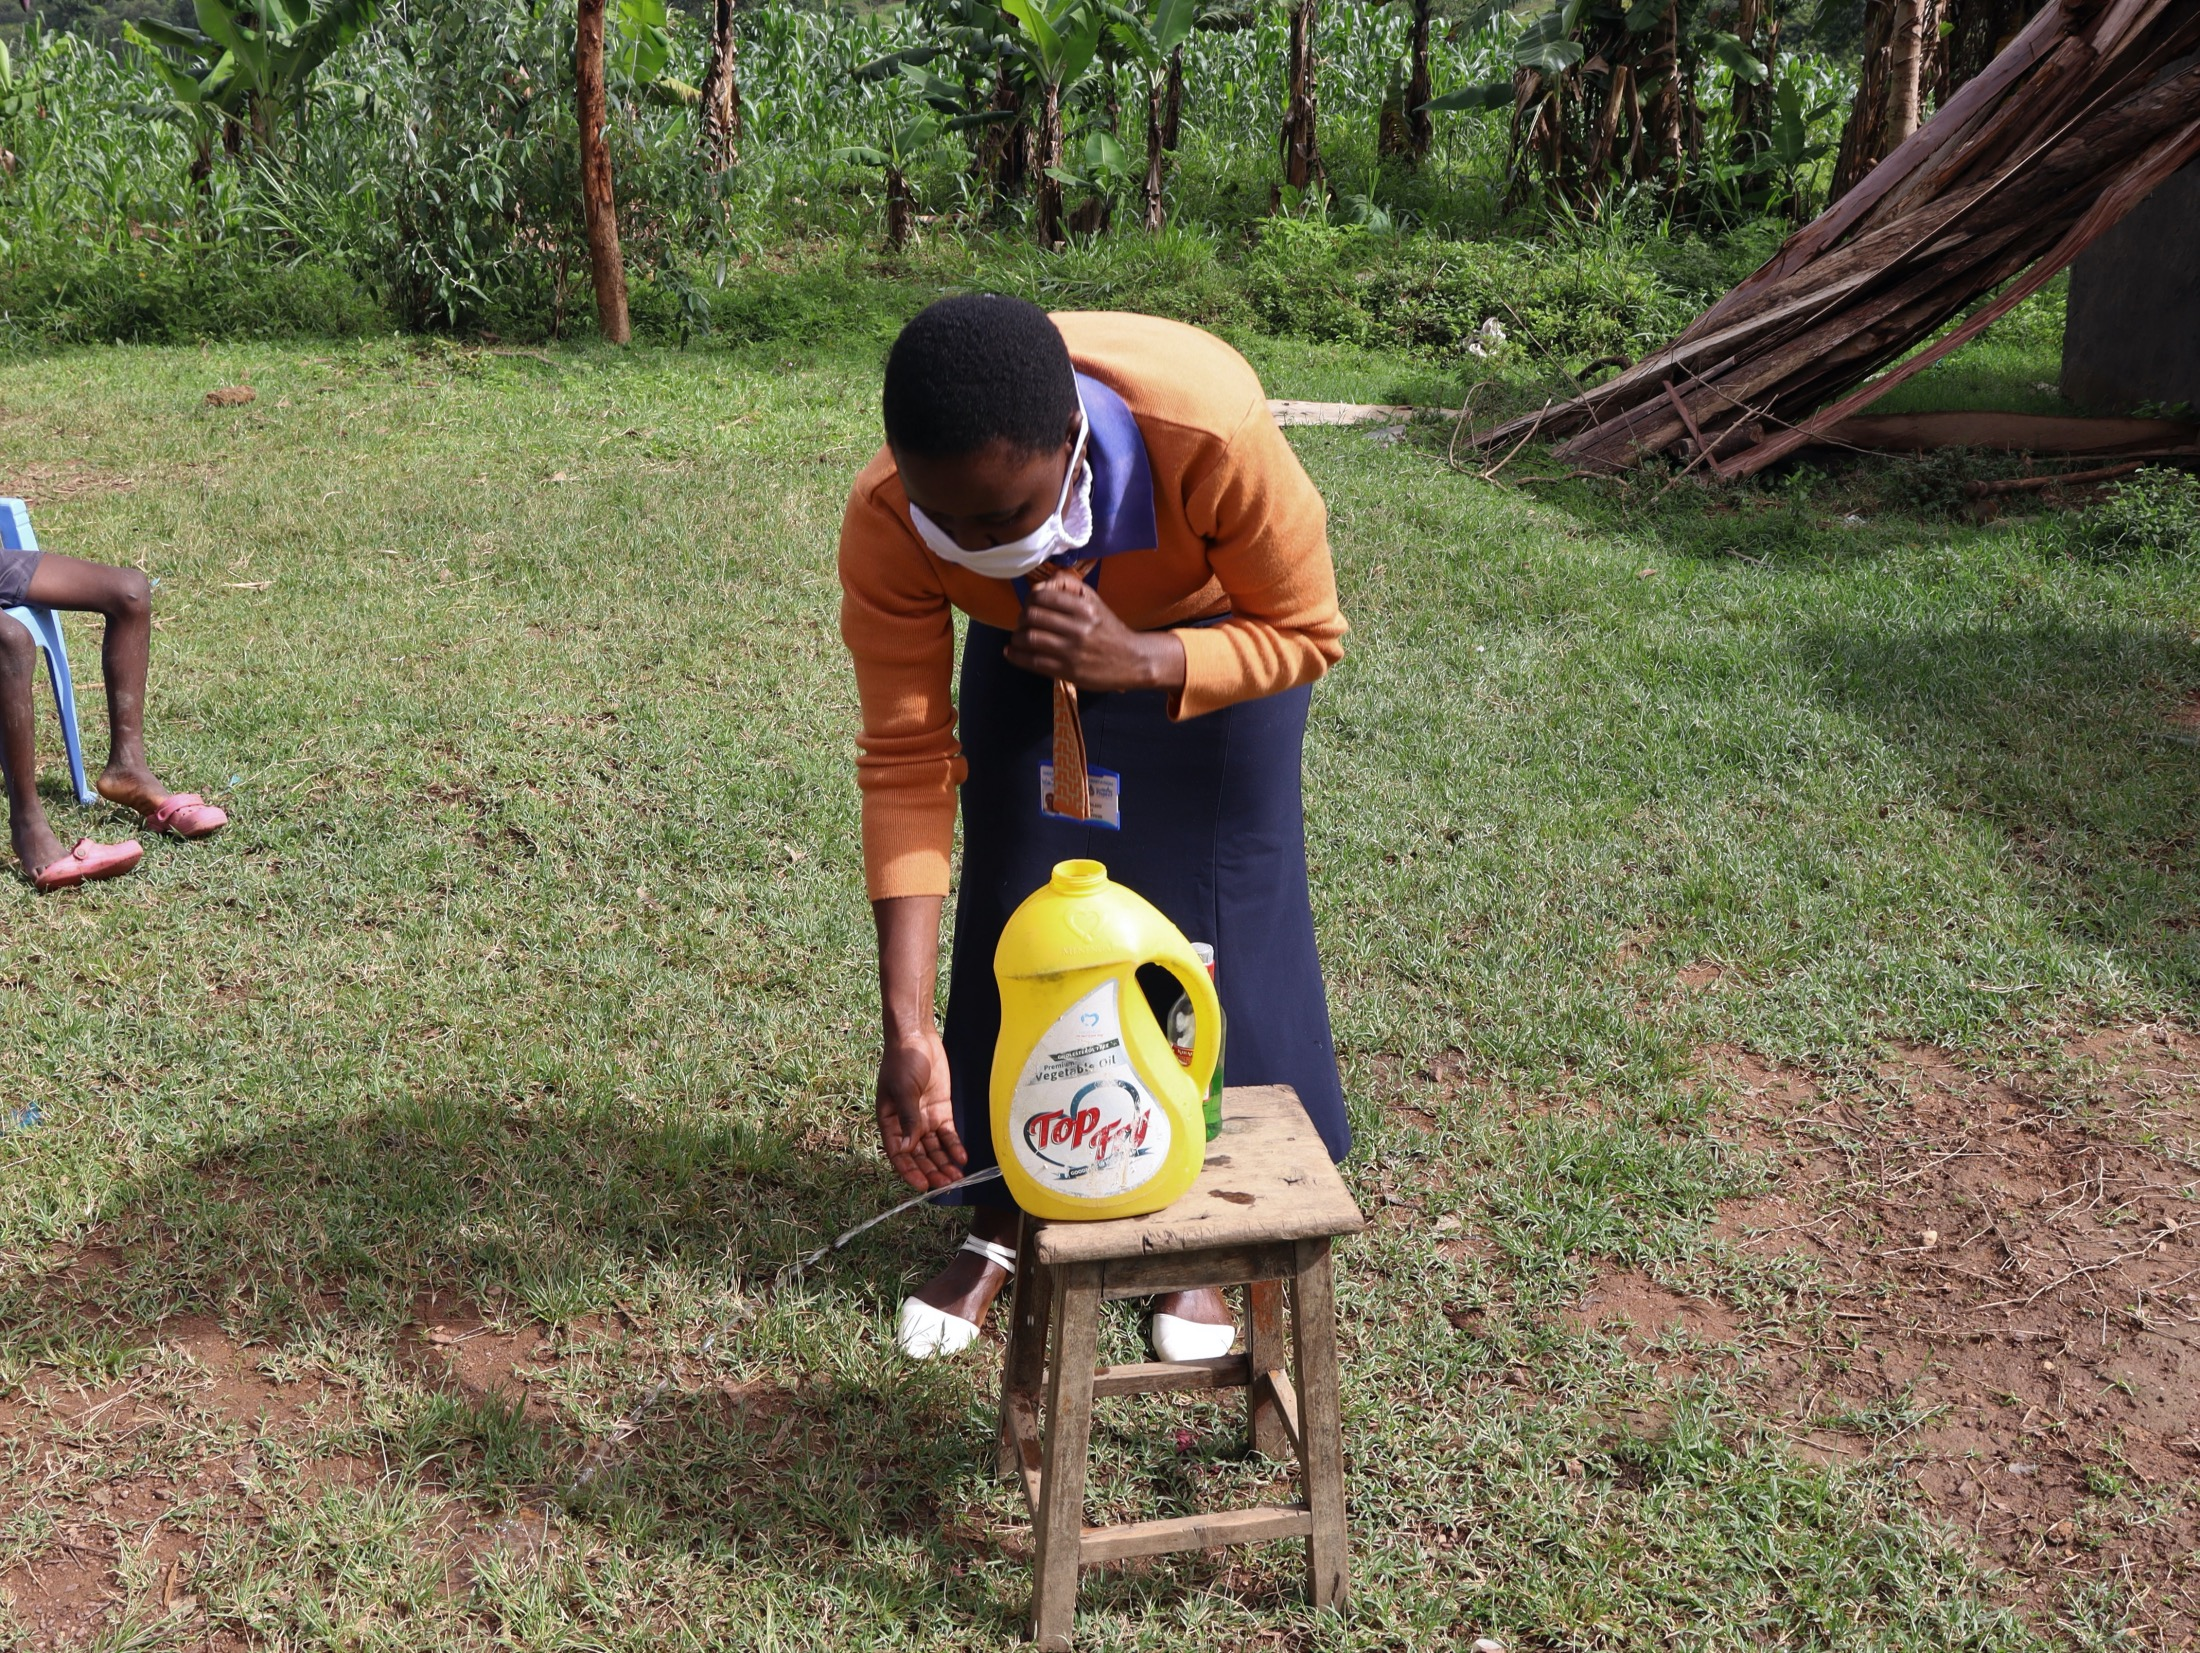 The Water Project : 6-covid19-kenya18154-trainer-amulavu-demonstrating-handwashing